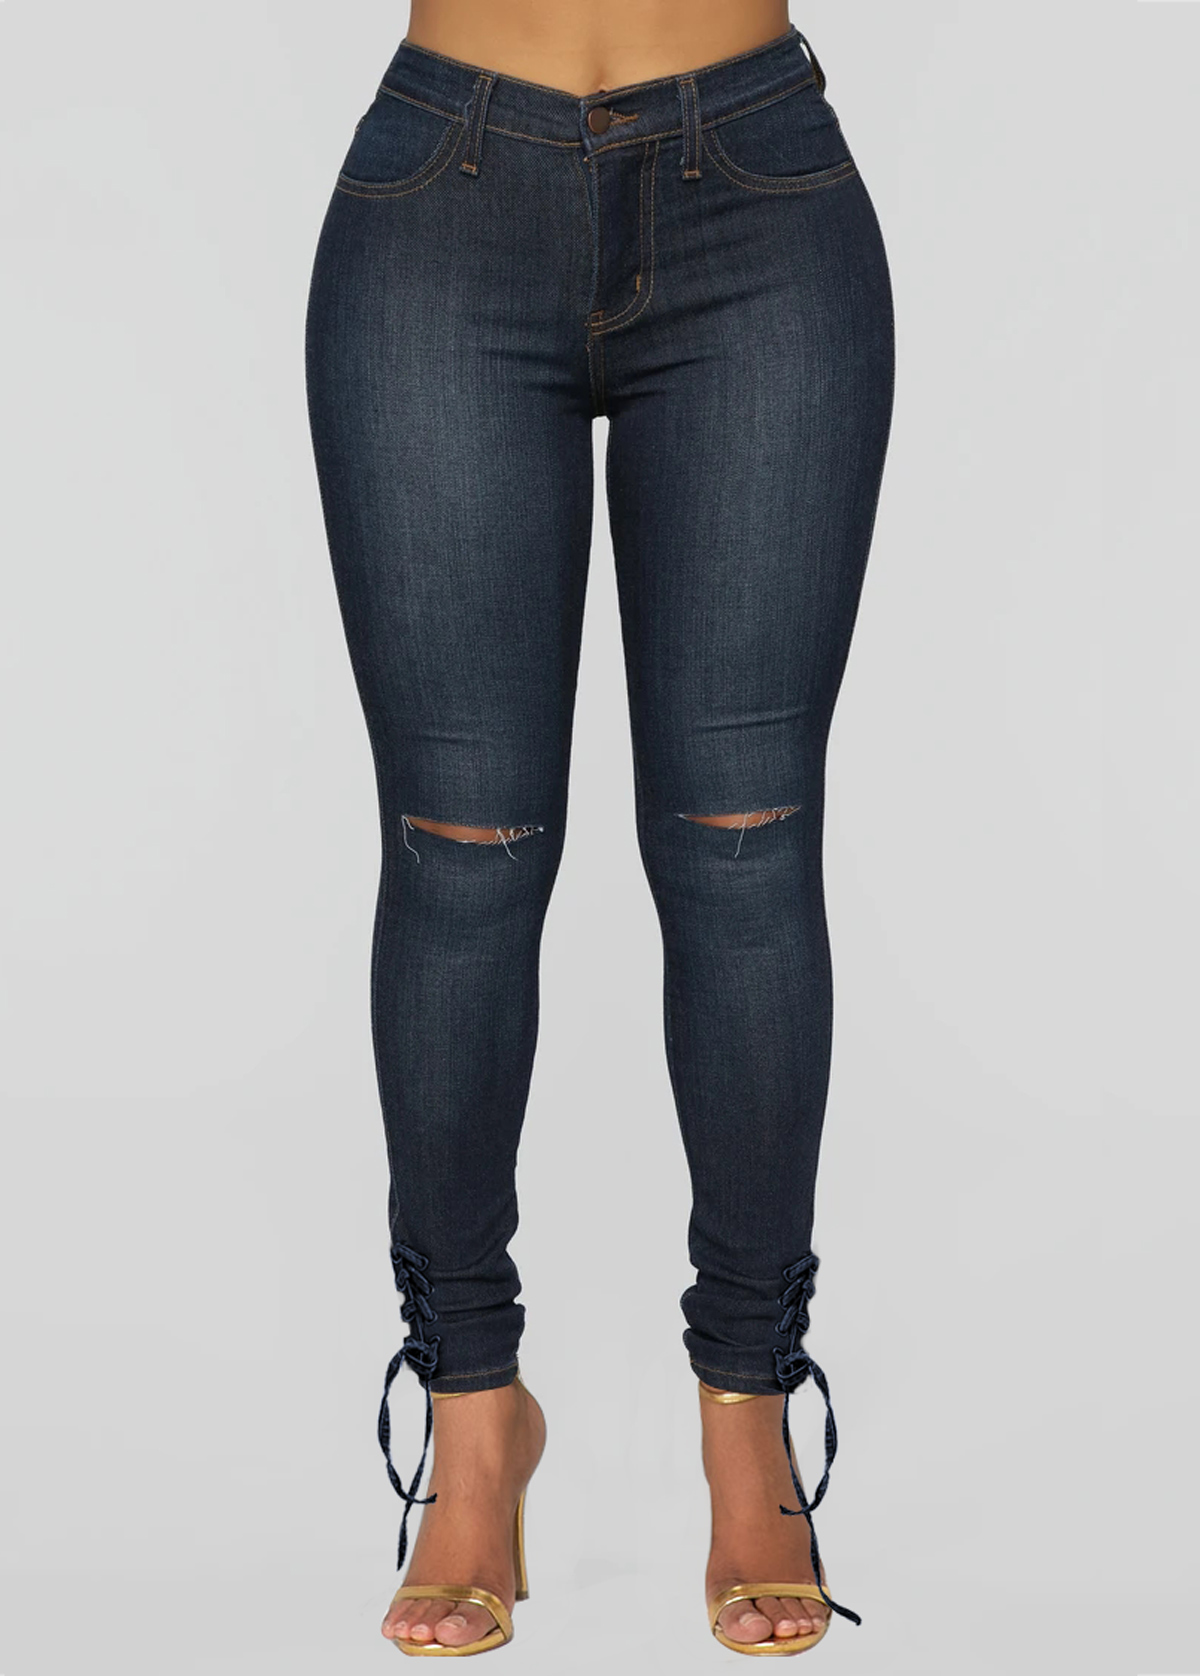 Pocket Shredded Grommet Lace Up Jeans